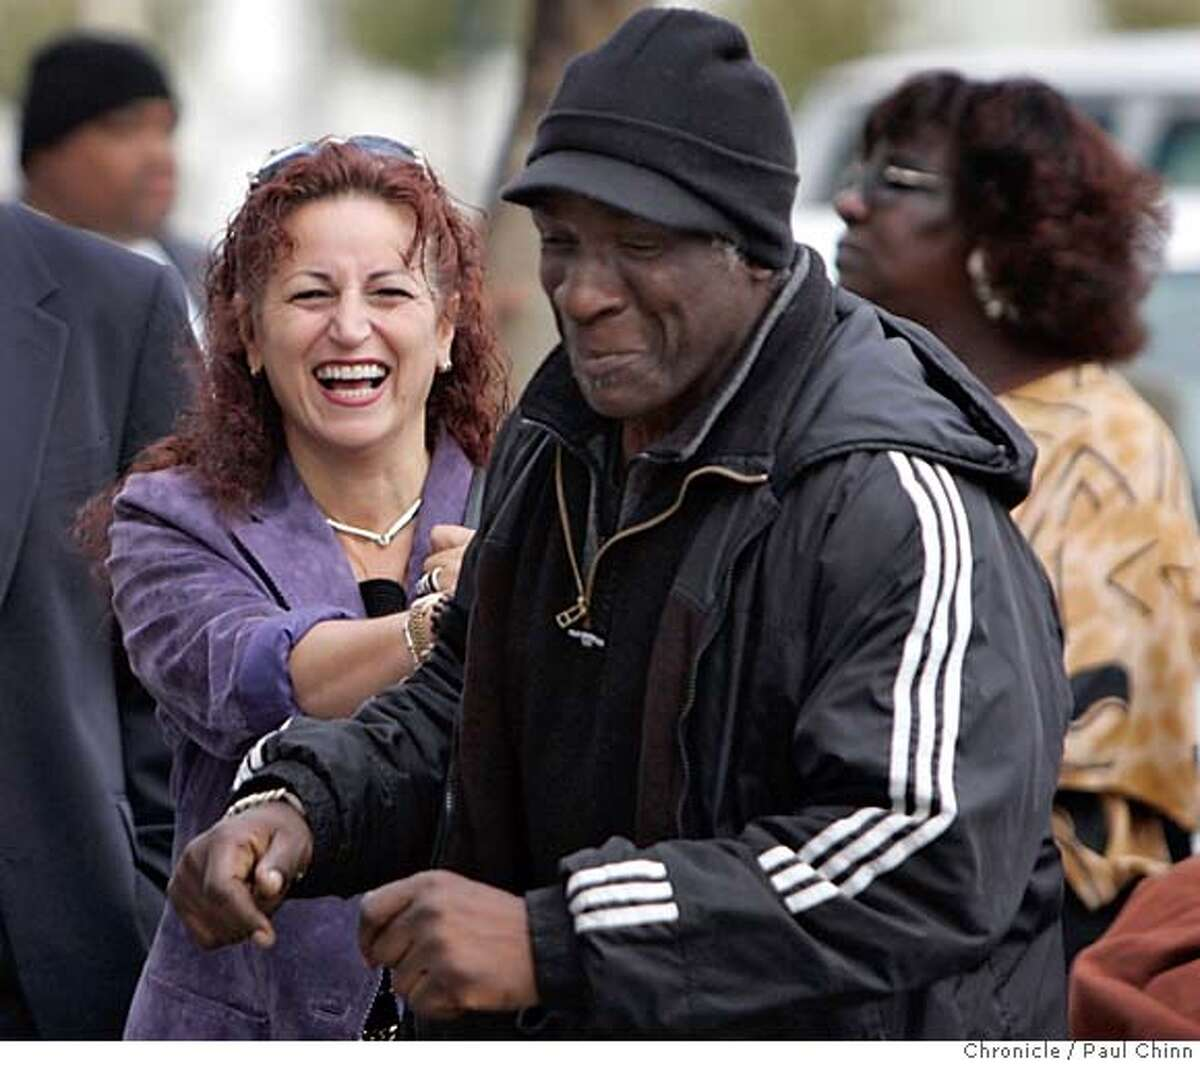 homeless19_052_pc.jpg Angela Alioto, who authored the city's ten-year plan to end chronic homelessness, laughs with Rocky McGriff, as he danced while waiting in line for services. Several hundred people waited in line for several hours at the Bill Graham Civic Auditorium for social assistance at the bi-monthly Project Homeless Connect program on 10/18/05 in San Francisco, Calif. PAUL CHINN/The Chronicle MANDATORY CREDIT FOR PHOTOG AND S.F. CHRONICLE/ - MAGS OUT